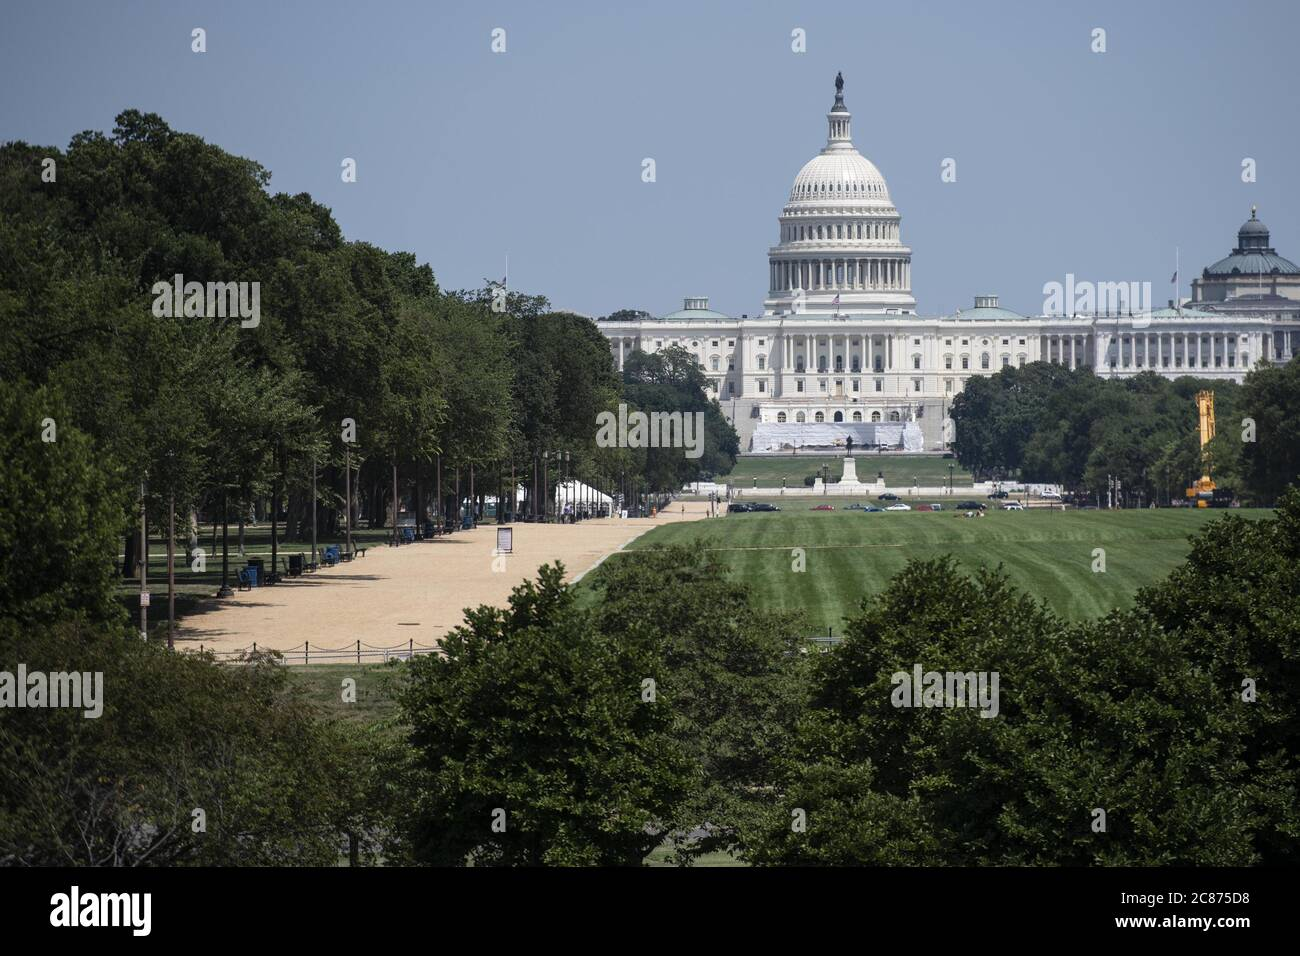 "Washington, USA. 21st July, 2020. Photo taken on July 21, 2020 shows the U.S. Capitol Building in Washington, DC, the United States. U.S. President Donald Trump said Tuesday afternoon that the coronavirus pandemic in the United States will probably ""get worse before it gets better."" More than 3.8 million people in the United States have infected with the virus, with more than 141,000 deaths, according to a count by Johns Hopkins University, as some states, including Florida, are seeing a surge in cases. Credit: Liu Jie/Xinhua/Alamy Live News Stock Photo"